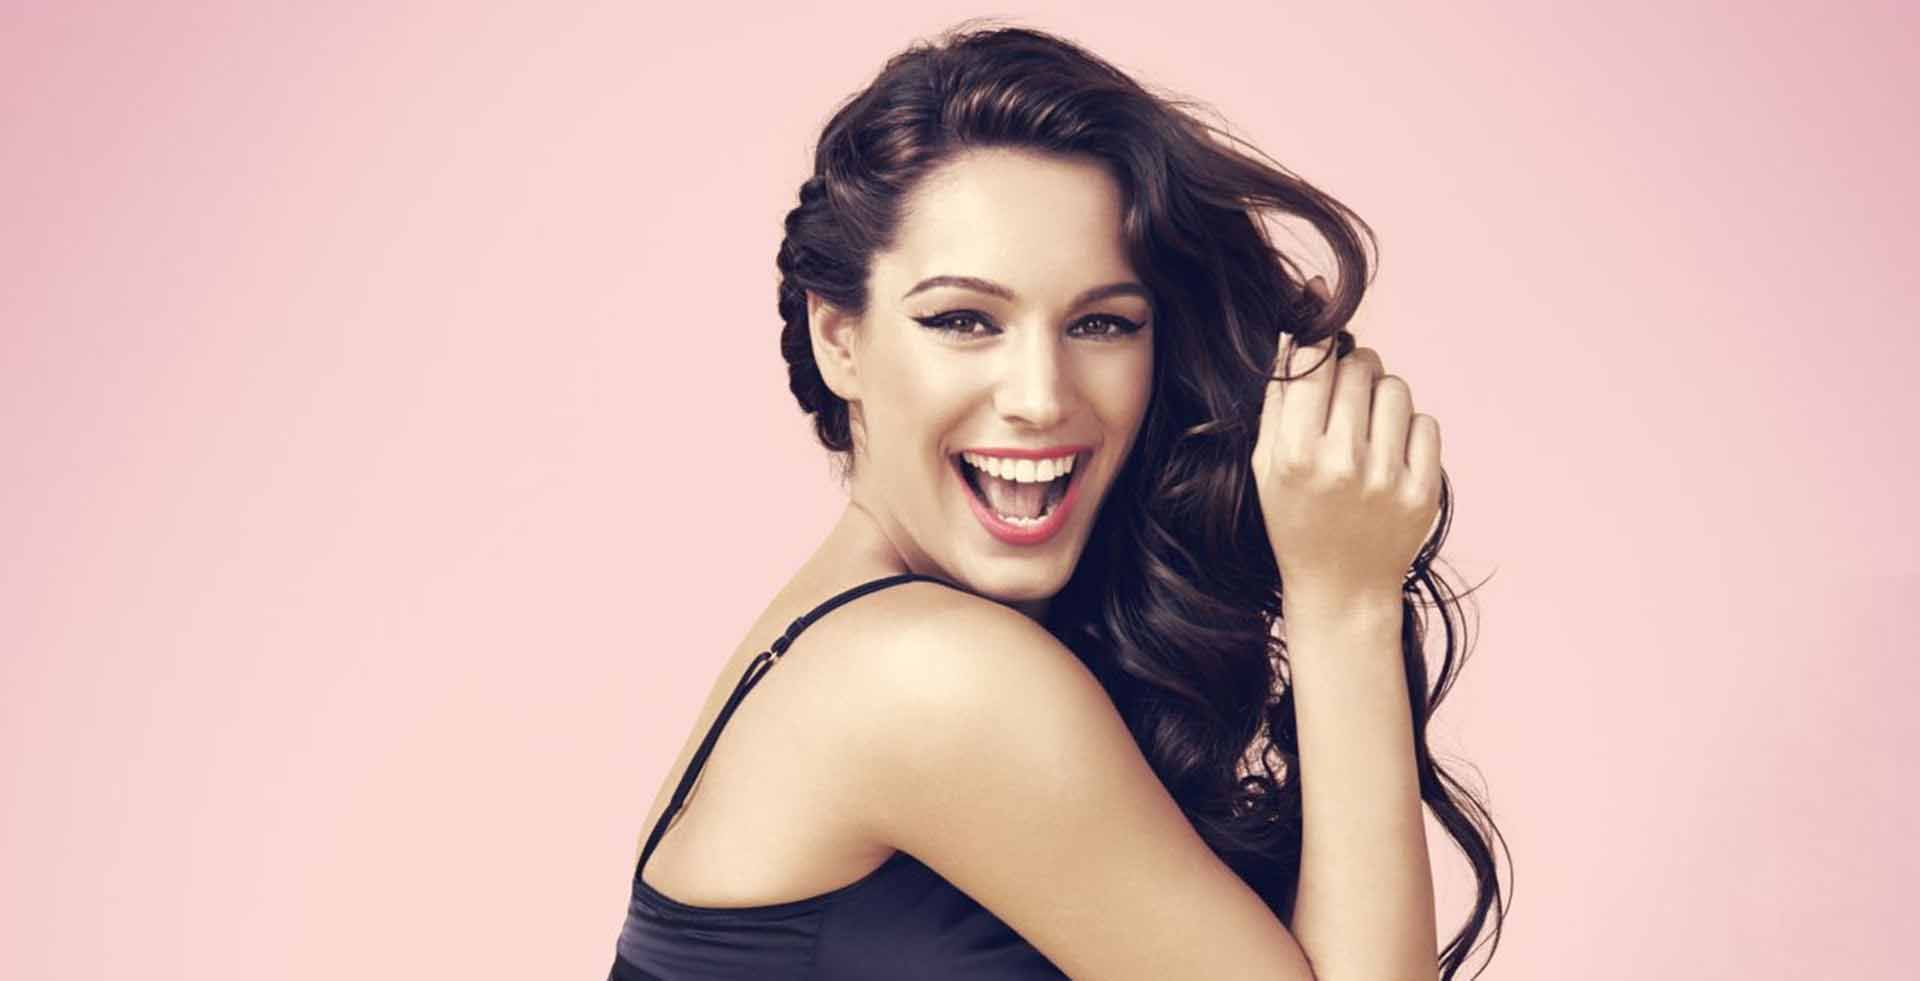 Hd Cute Kelly Brook Desktop Wallpaper Download